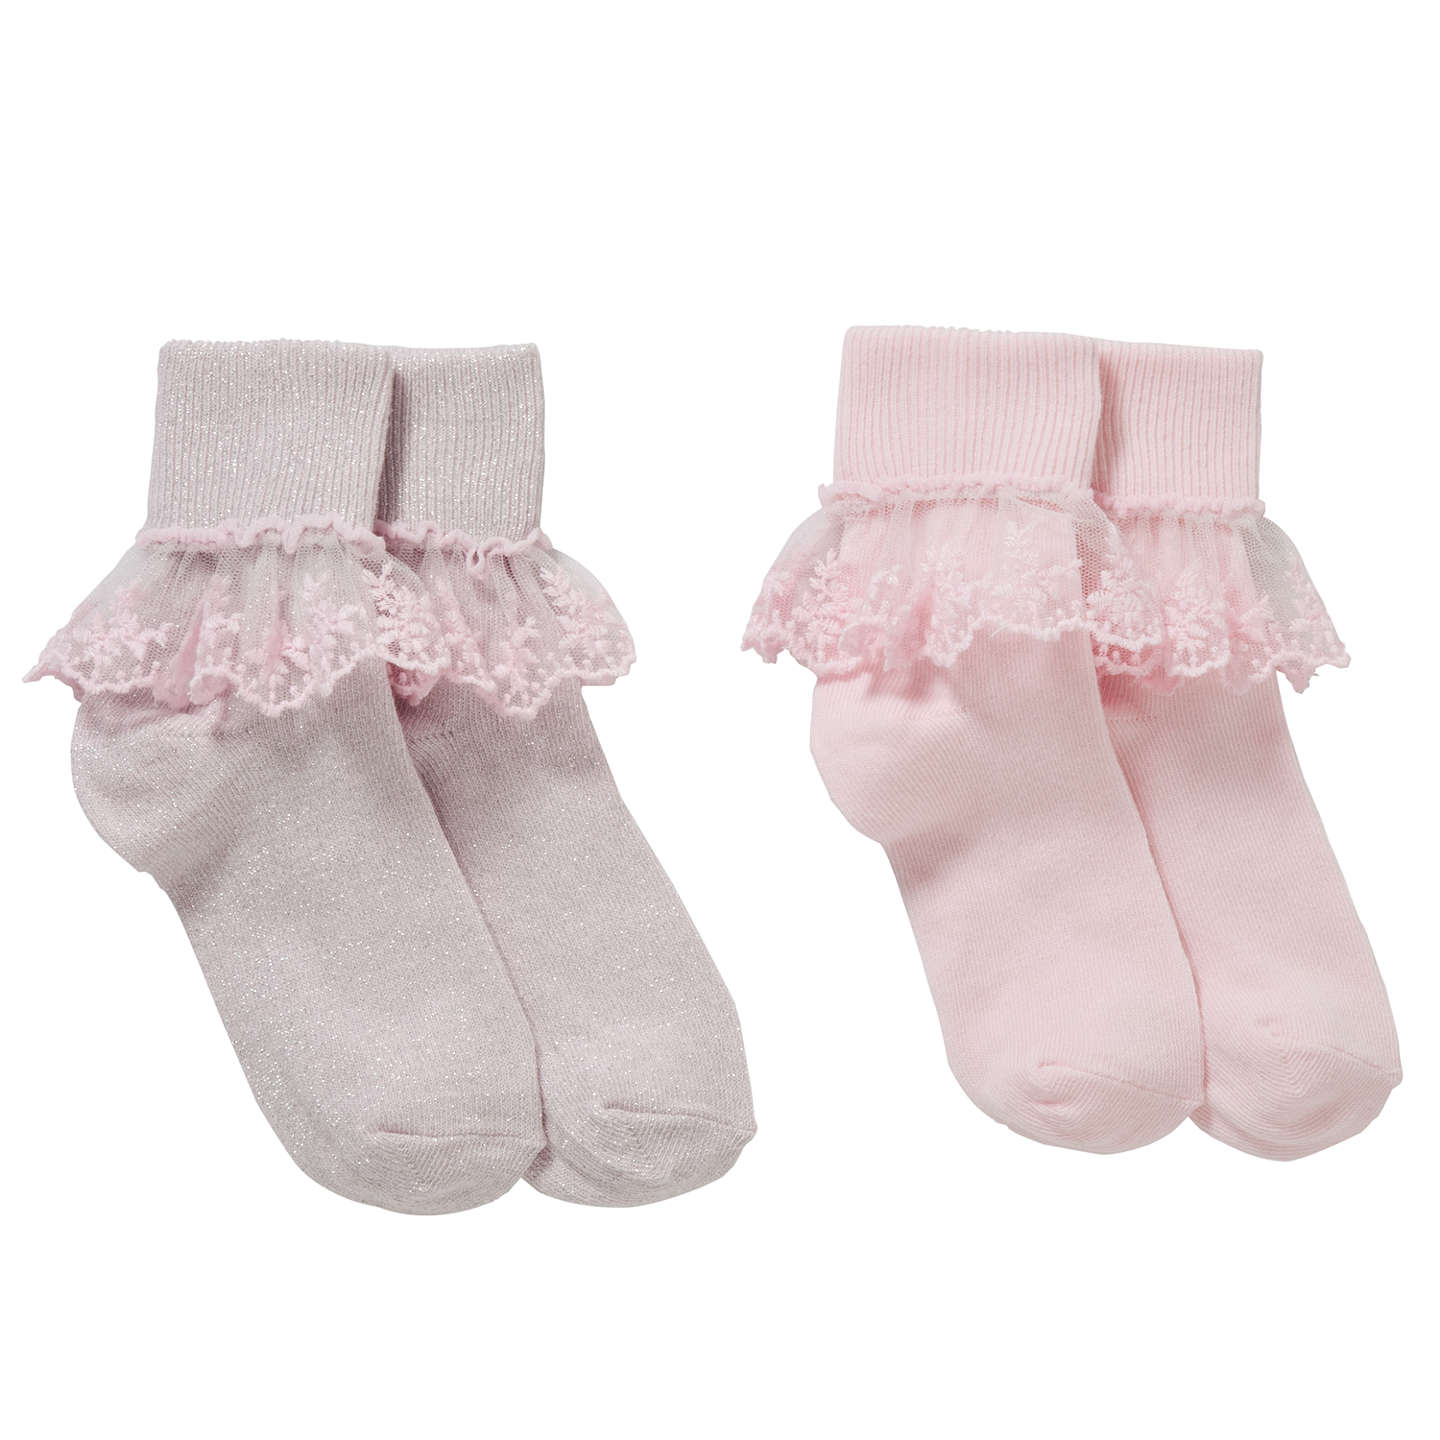 John Lewis Girls Bridal Floral Lace Socks Pack of 2 Pink at John